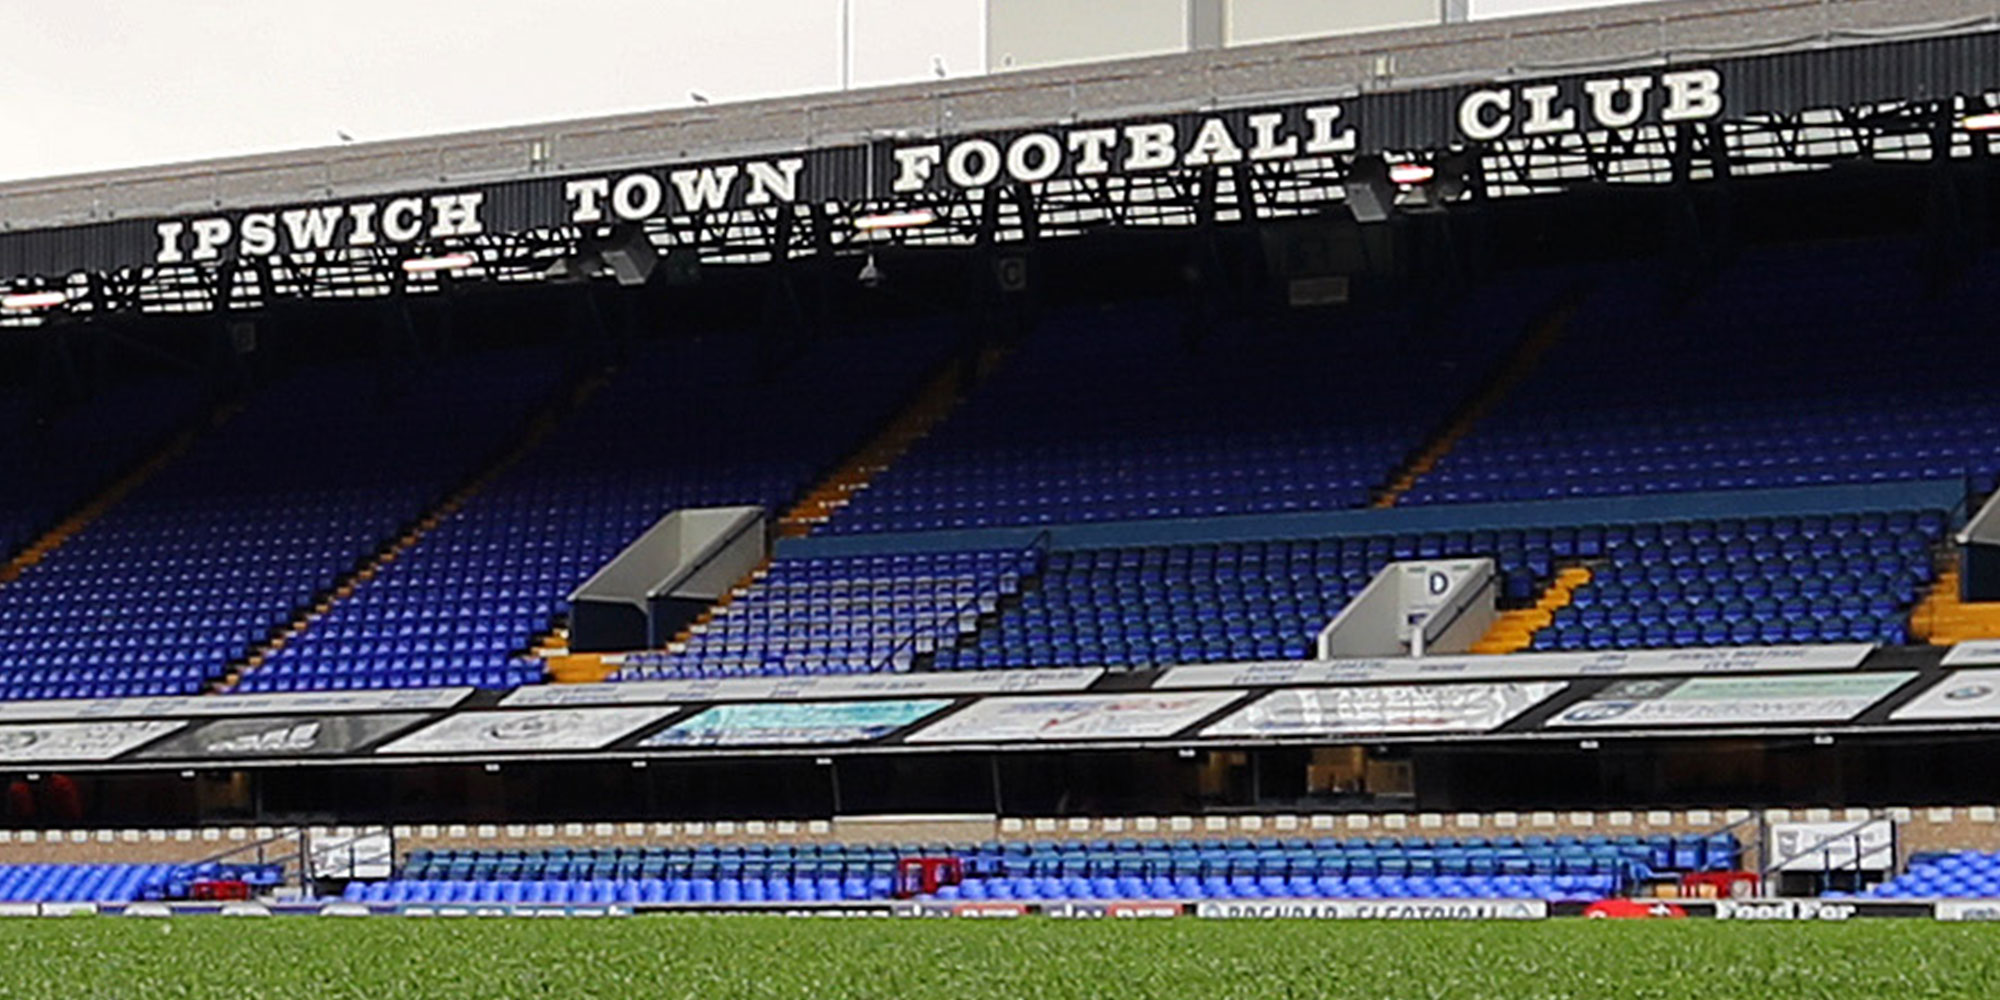 Ipswich Town v Doncaster Rovers